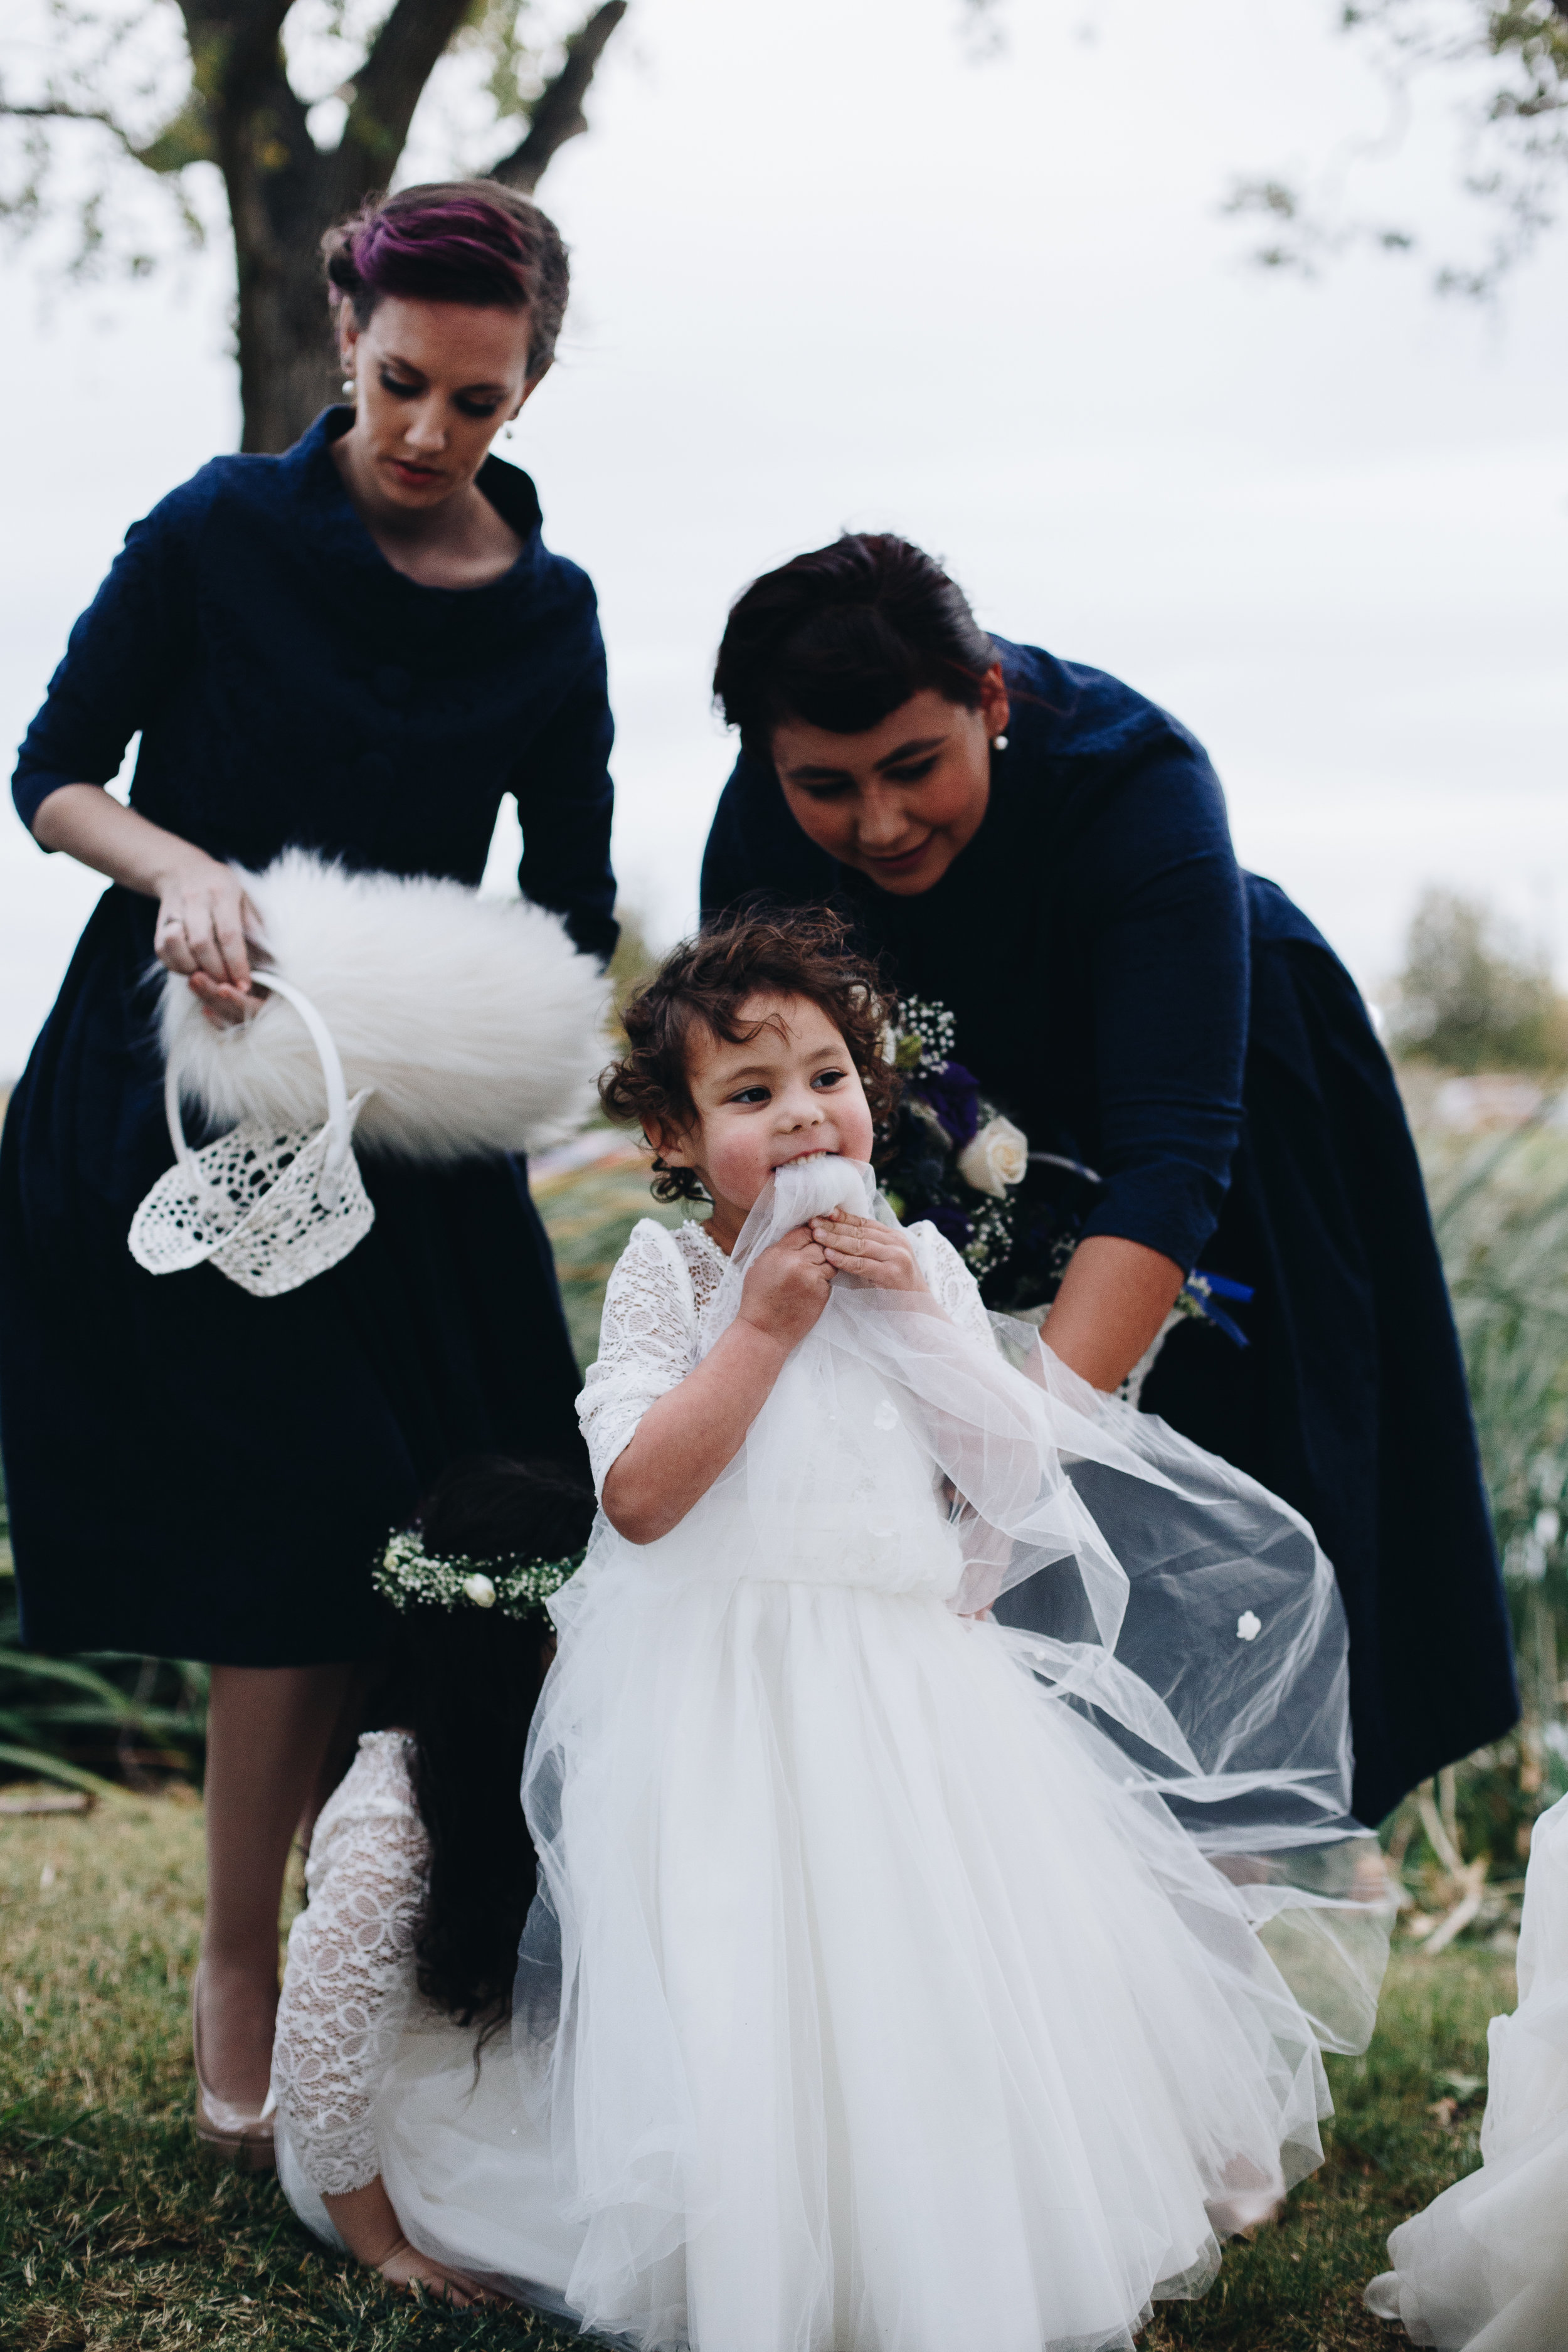 This sweetie flower girl was literally chewing on her dress while the bride and groom were chewing on some communion bread during the ceremony. Shoutout to the Maids of Honor trying to wrangle the two flower girls with the most personality I've ever seen.